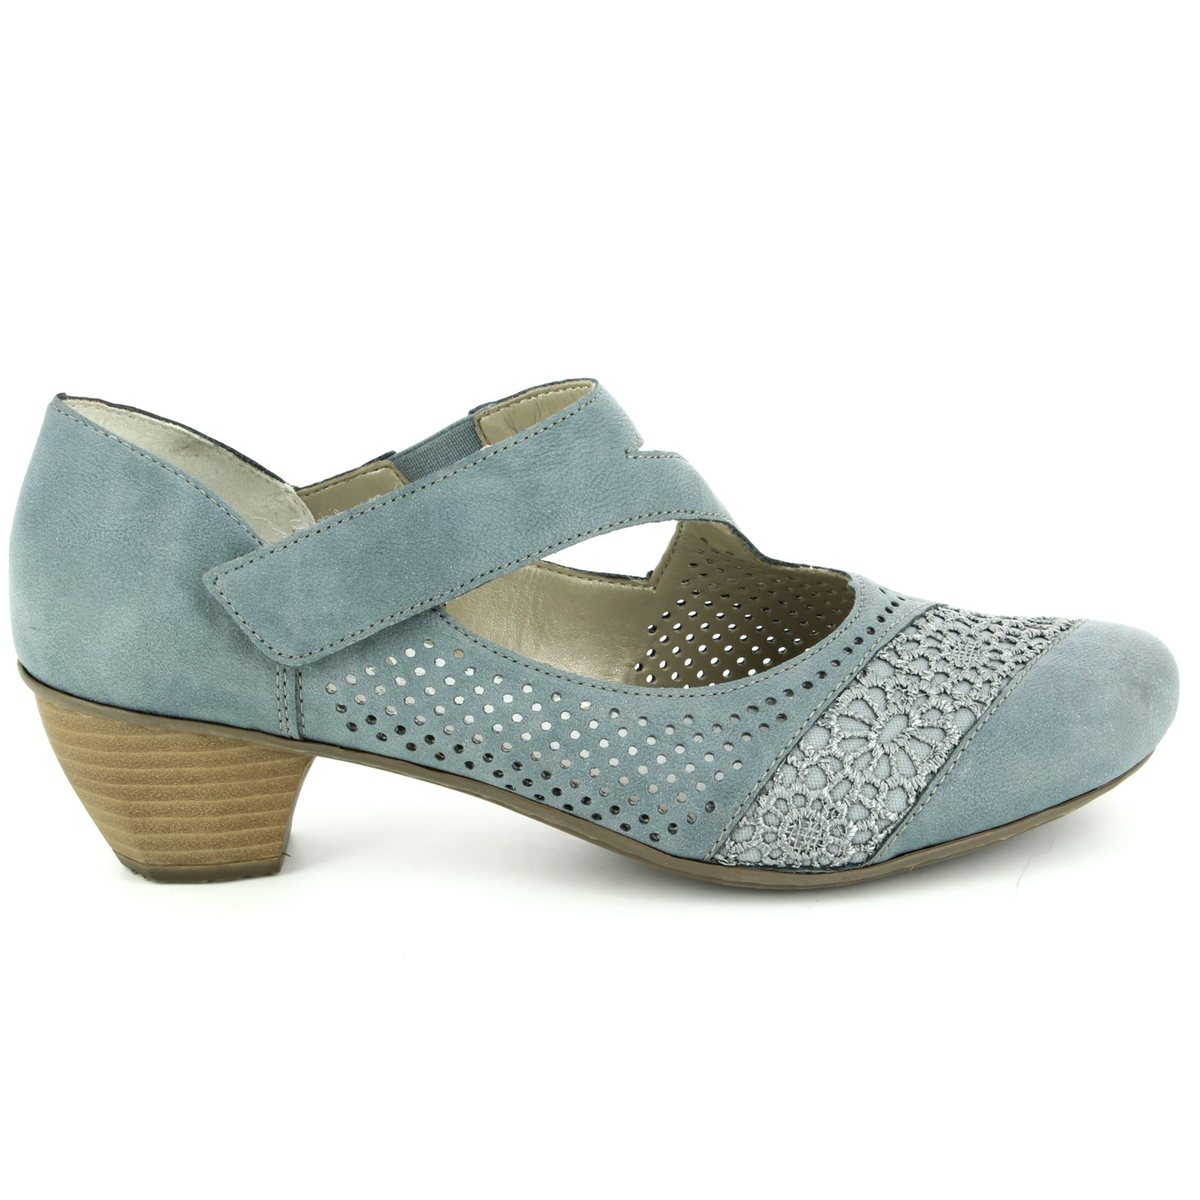 Womens 41743 Closed Toe Heels, Blue, 4 UK Rieker